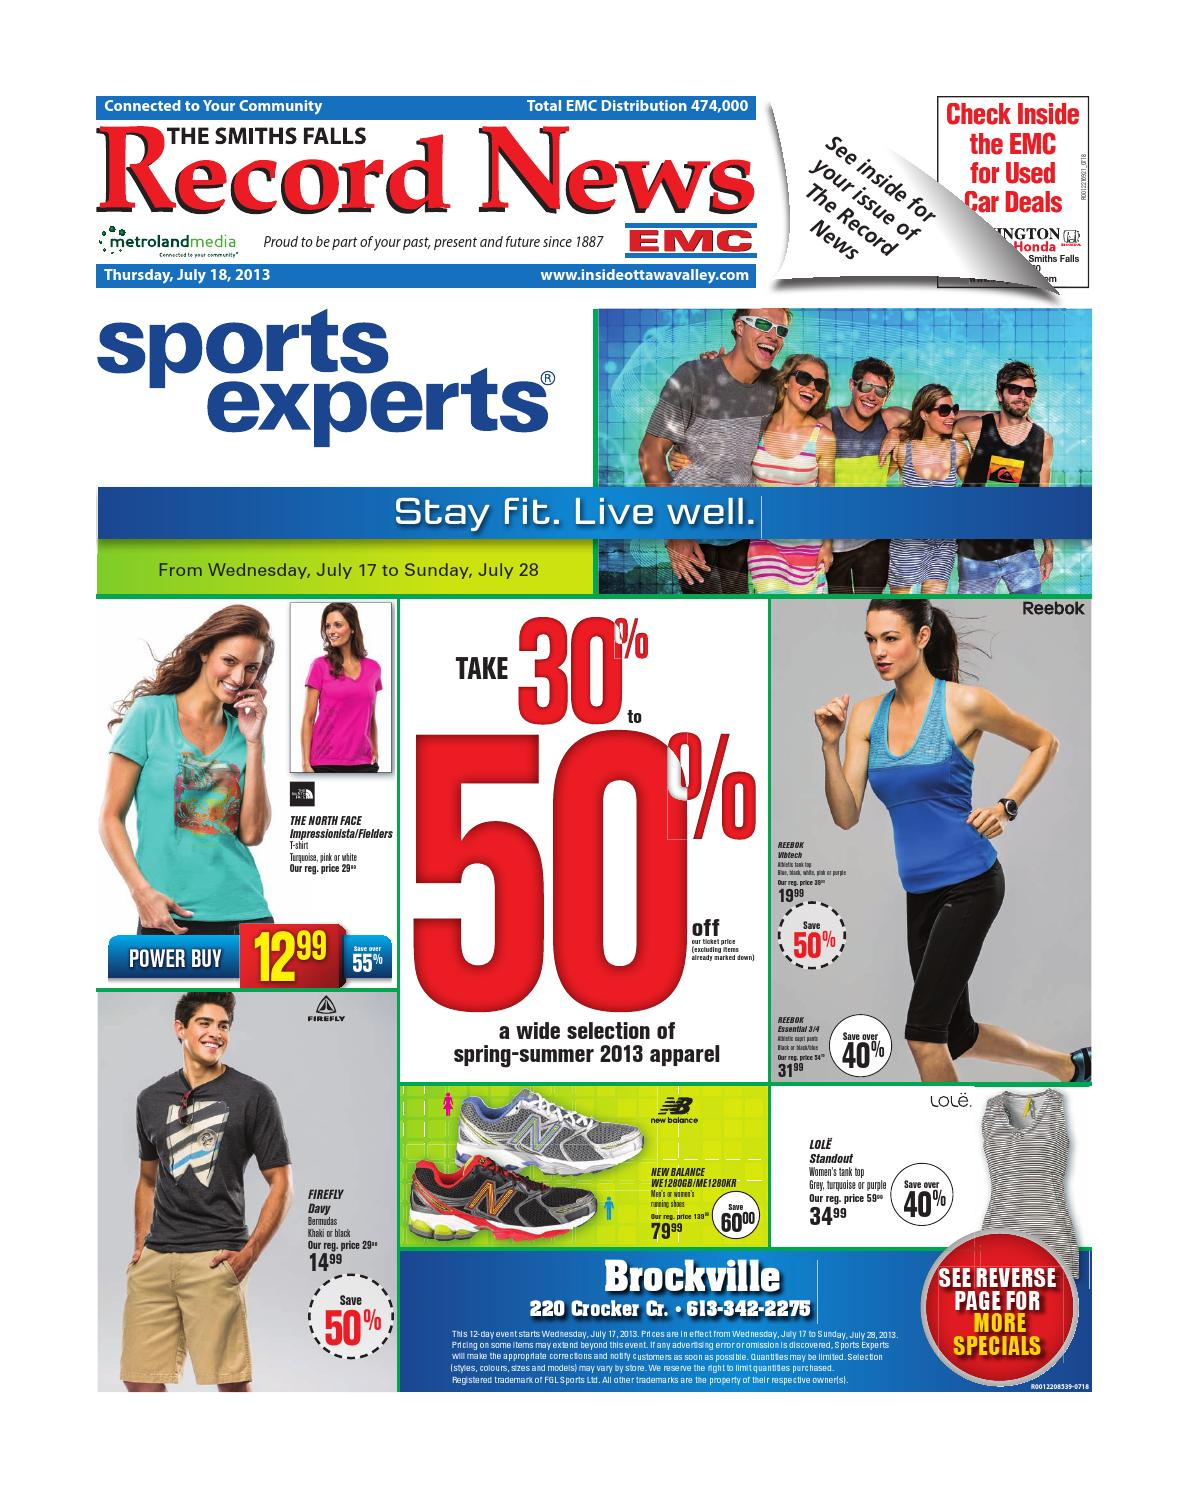 Smithsfalls071813 by Metroland East - Smiths Falls Record News - issuu 53184bdc9